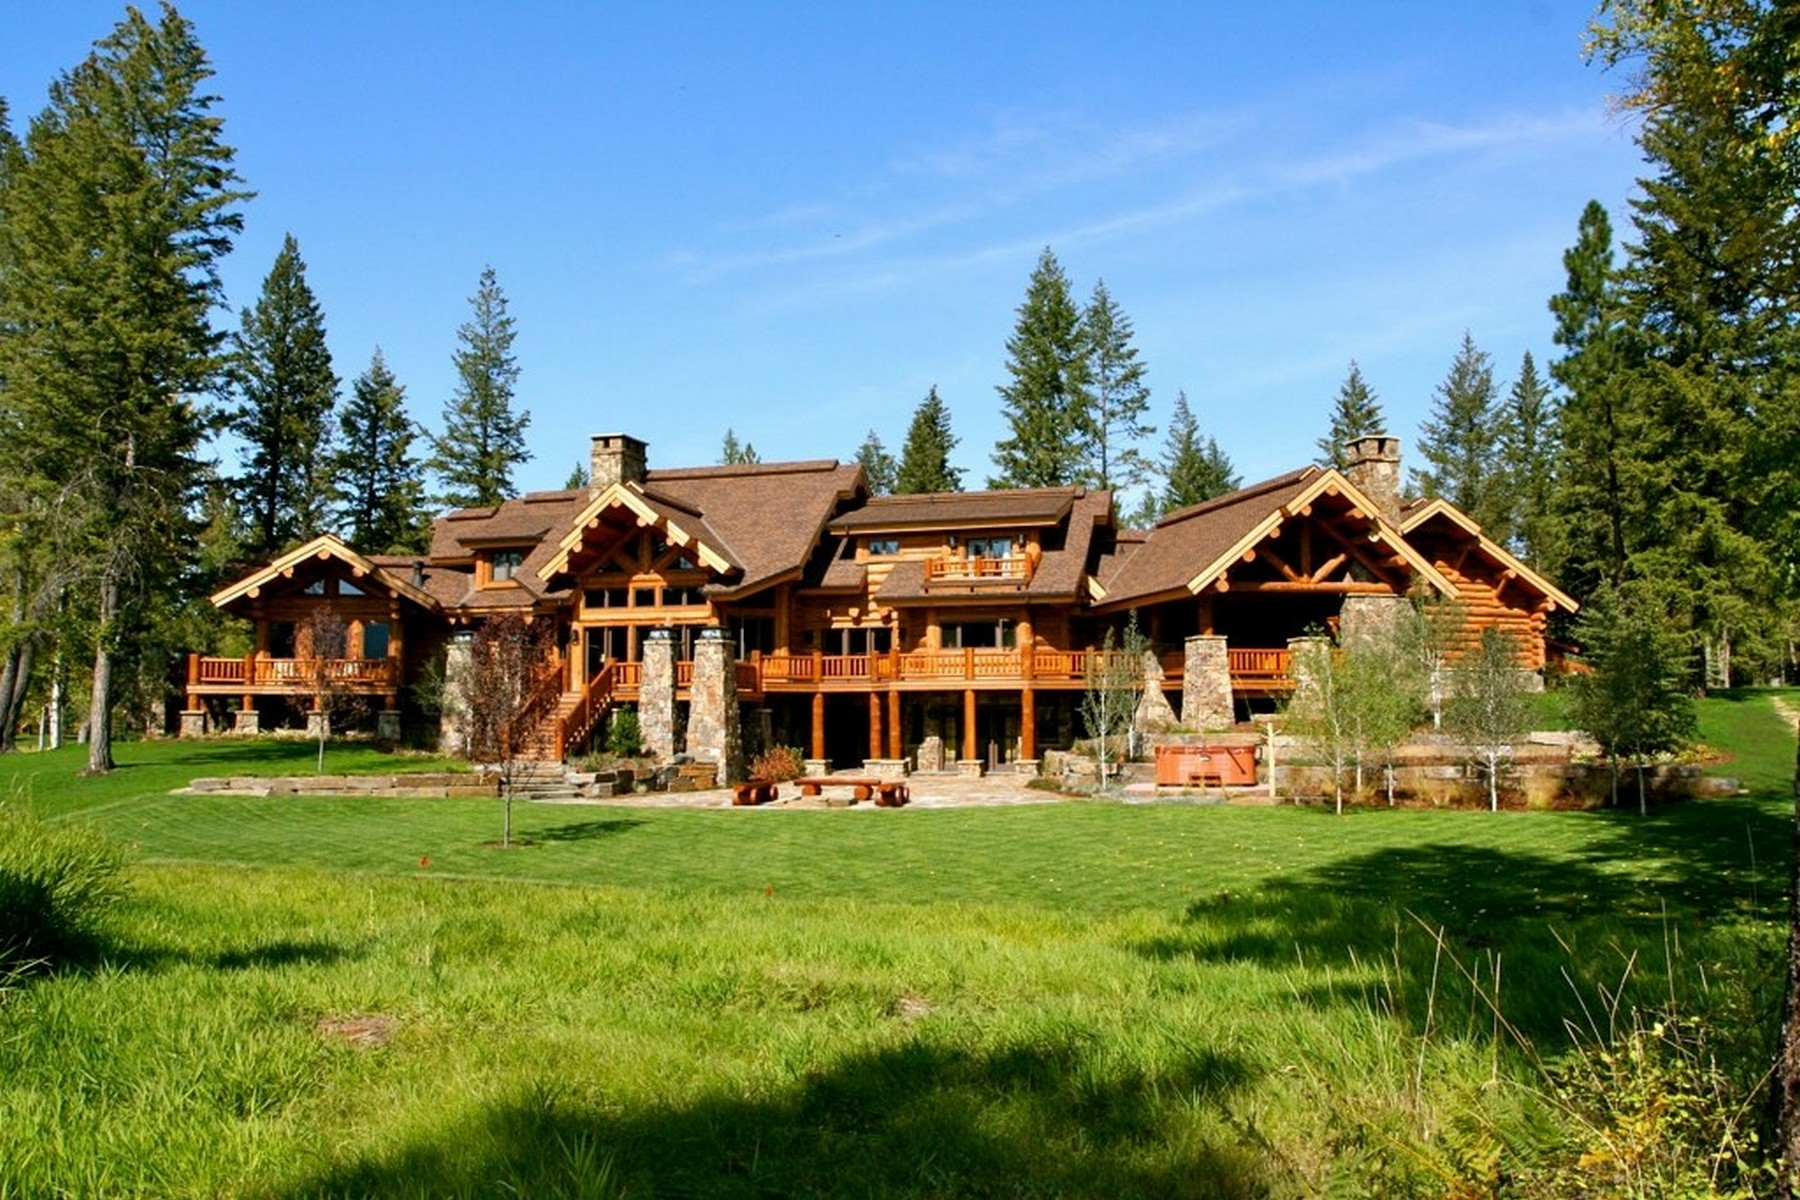 Property For Sale at Stunning Montana Log Home